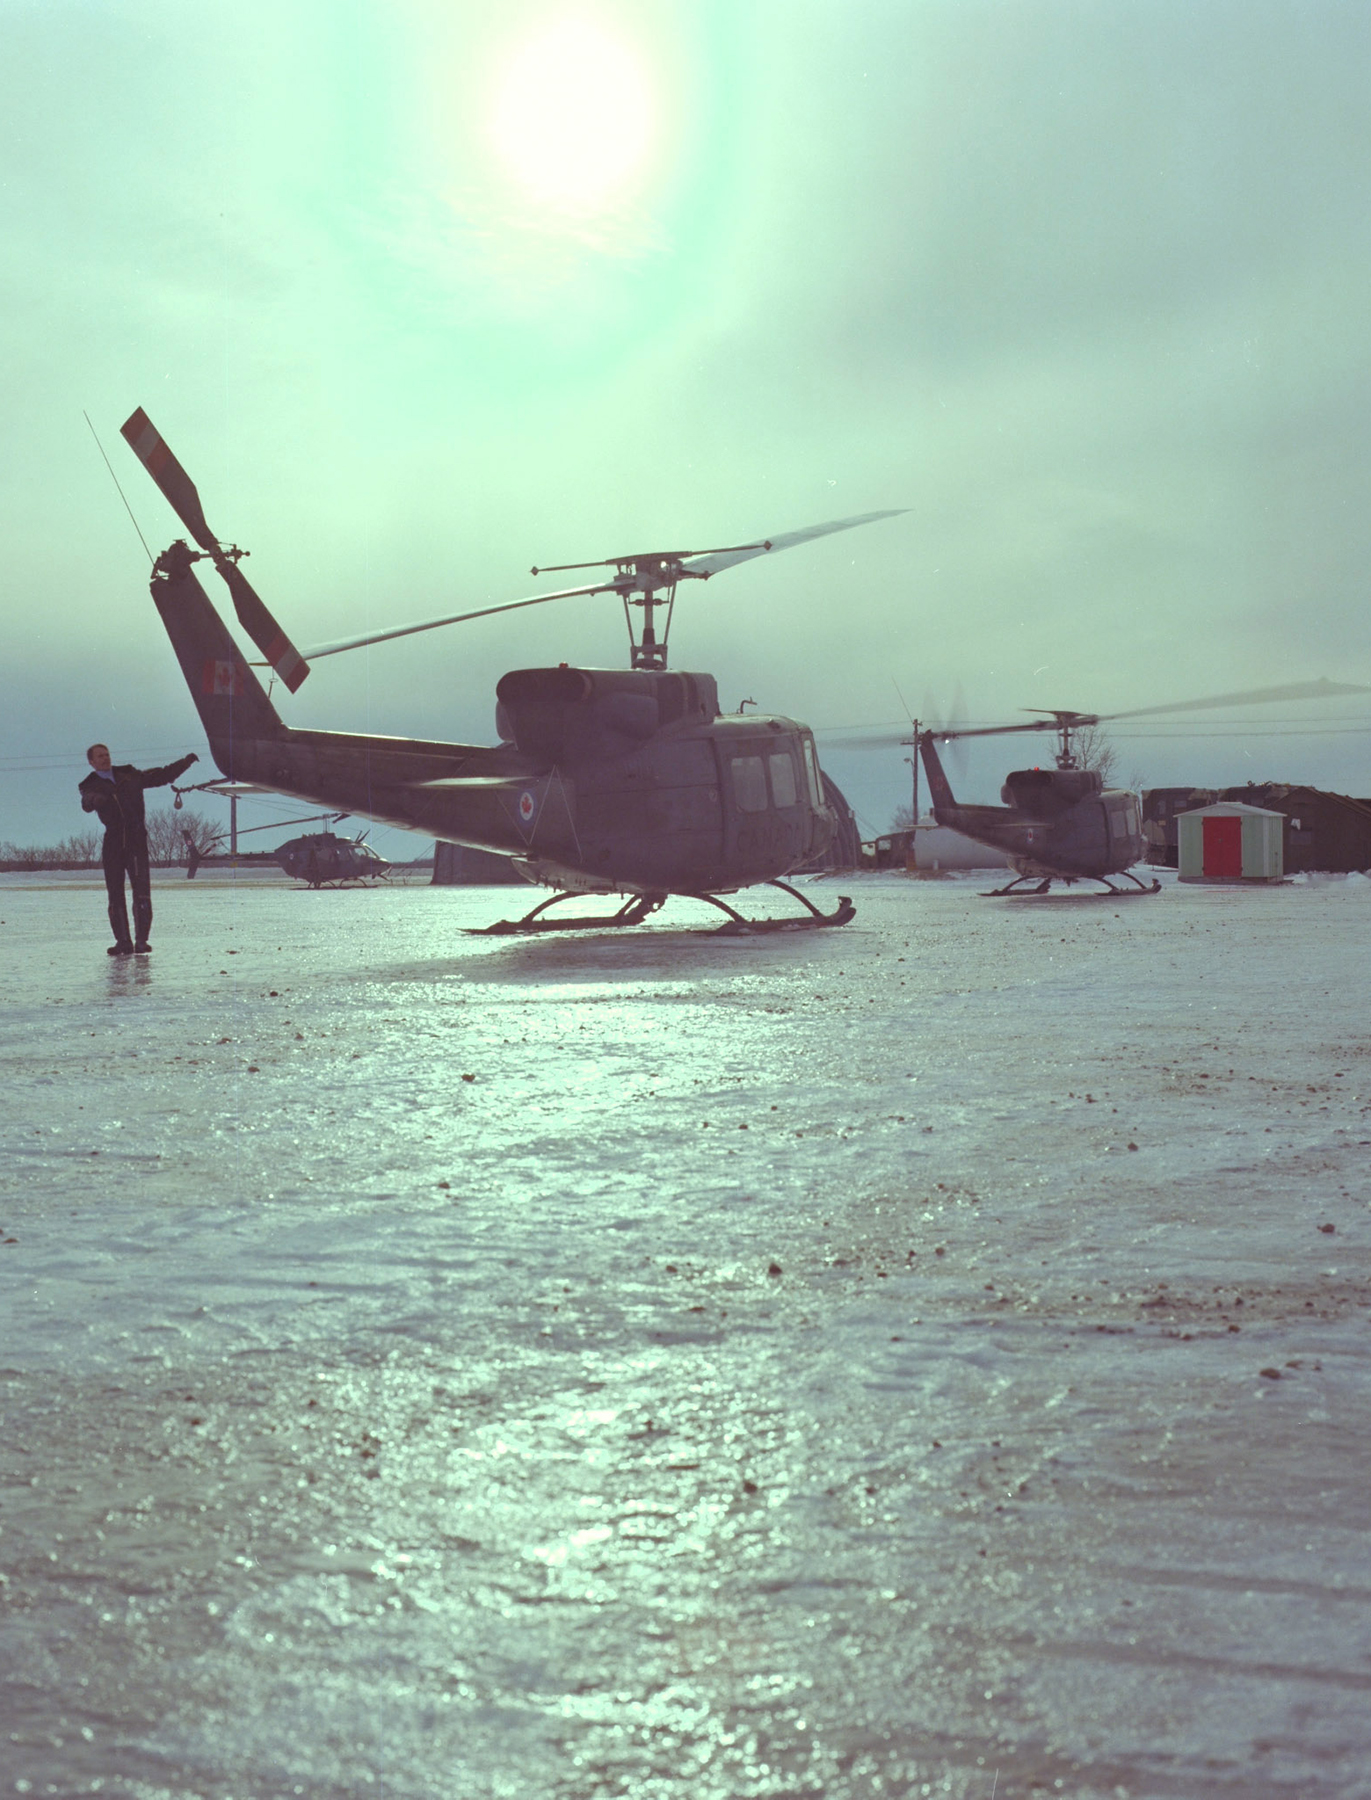 A 408 Squadron pilot does a pre-flight check on his Twin Huey helicopter on an icy day in 1981. PHOTO: Jack R. Seath